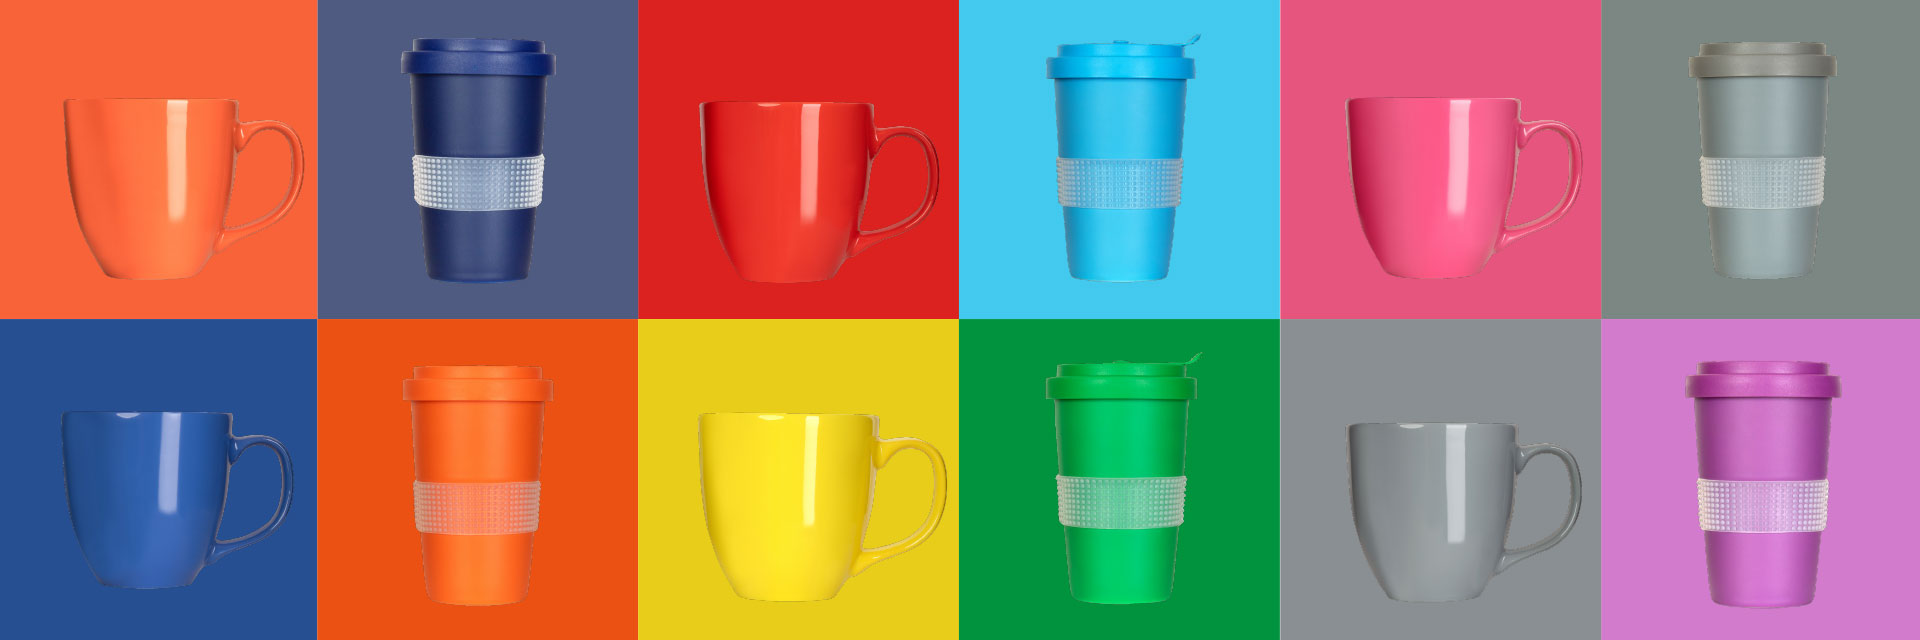 Cups and coffee to go mugs in trendy colors for summer 2021